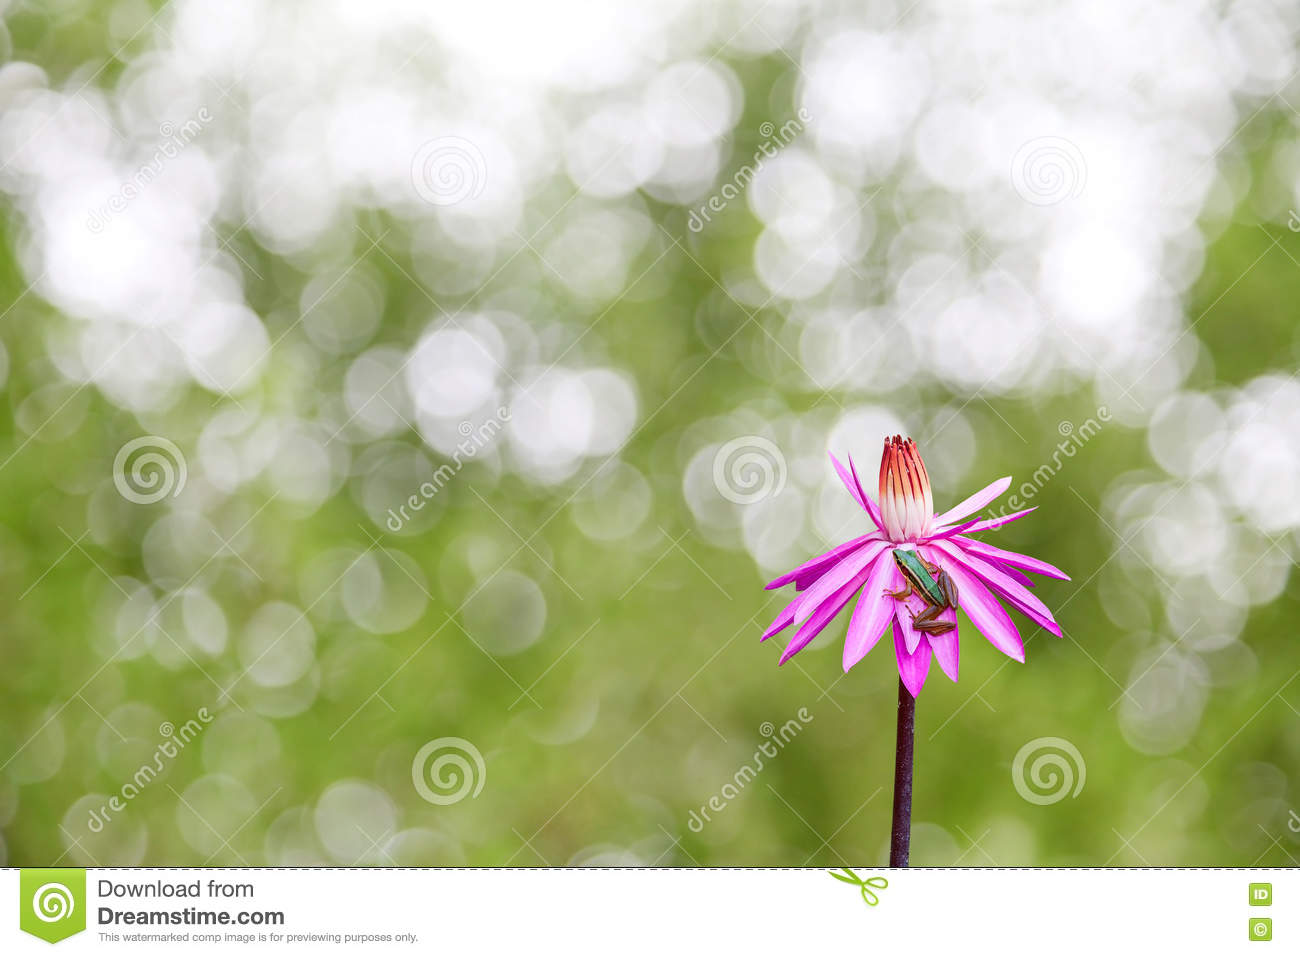 Frog On Lotus Flowers On Nature Green Background Stock Photo